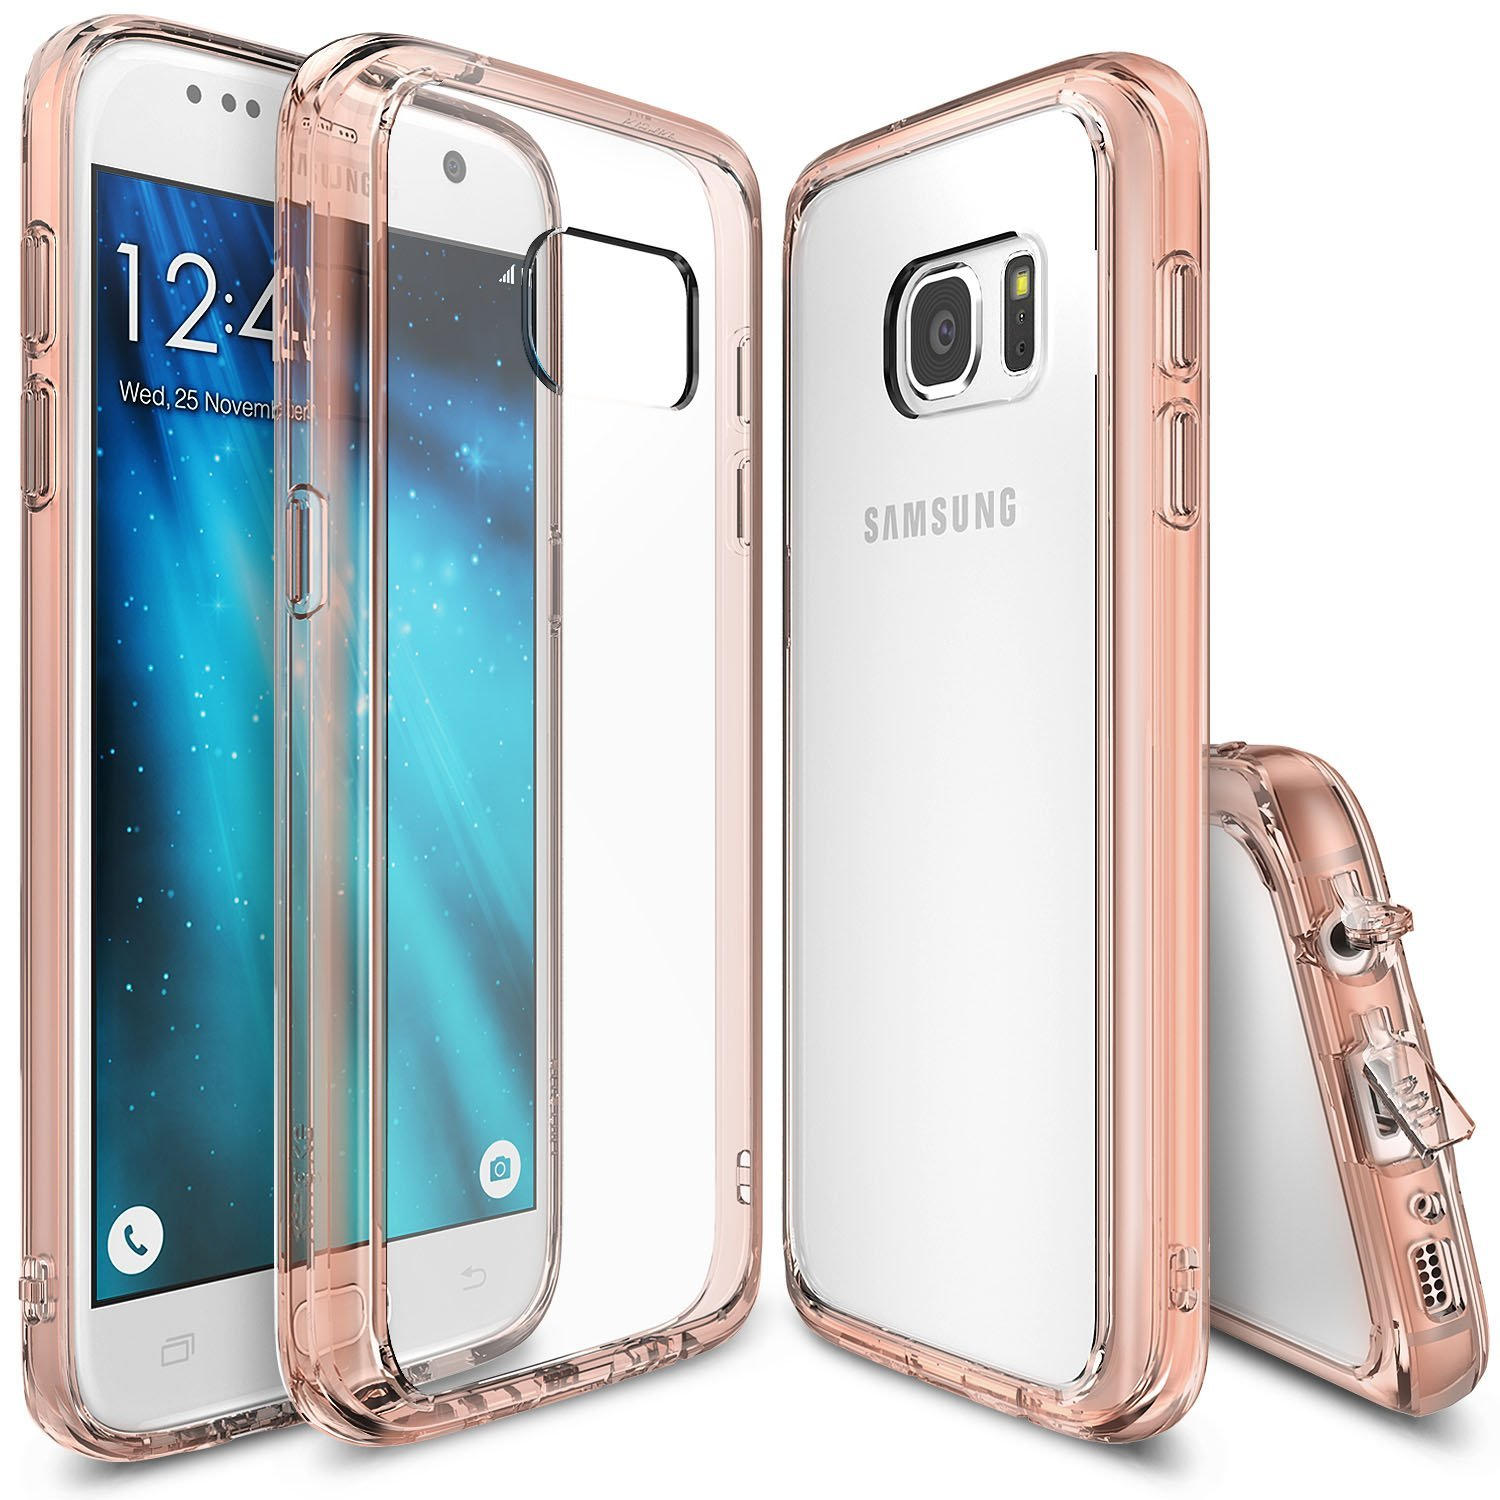 Samsung Galaxy S7 Case,Ringke [Rose Gold Crystal] FUSION series Absorb Shock TPU Bumper Clear Case